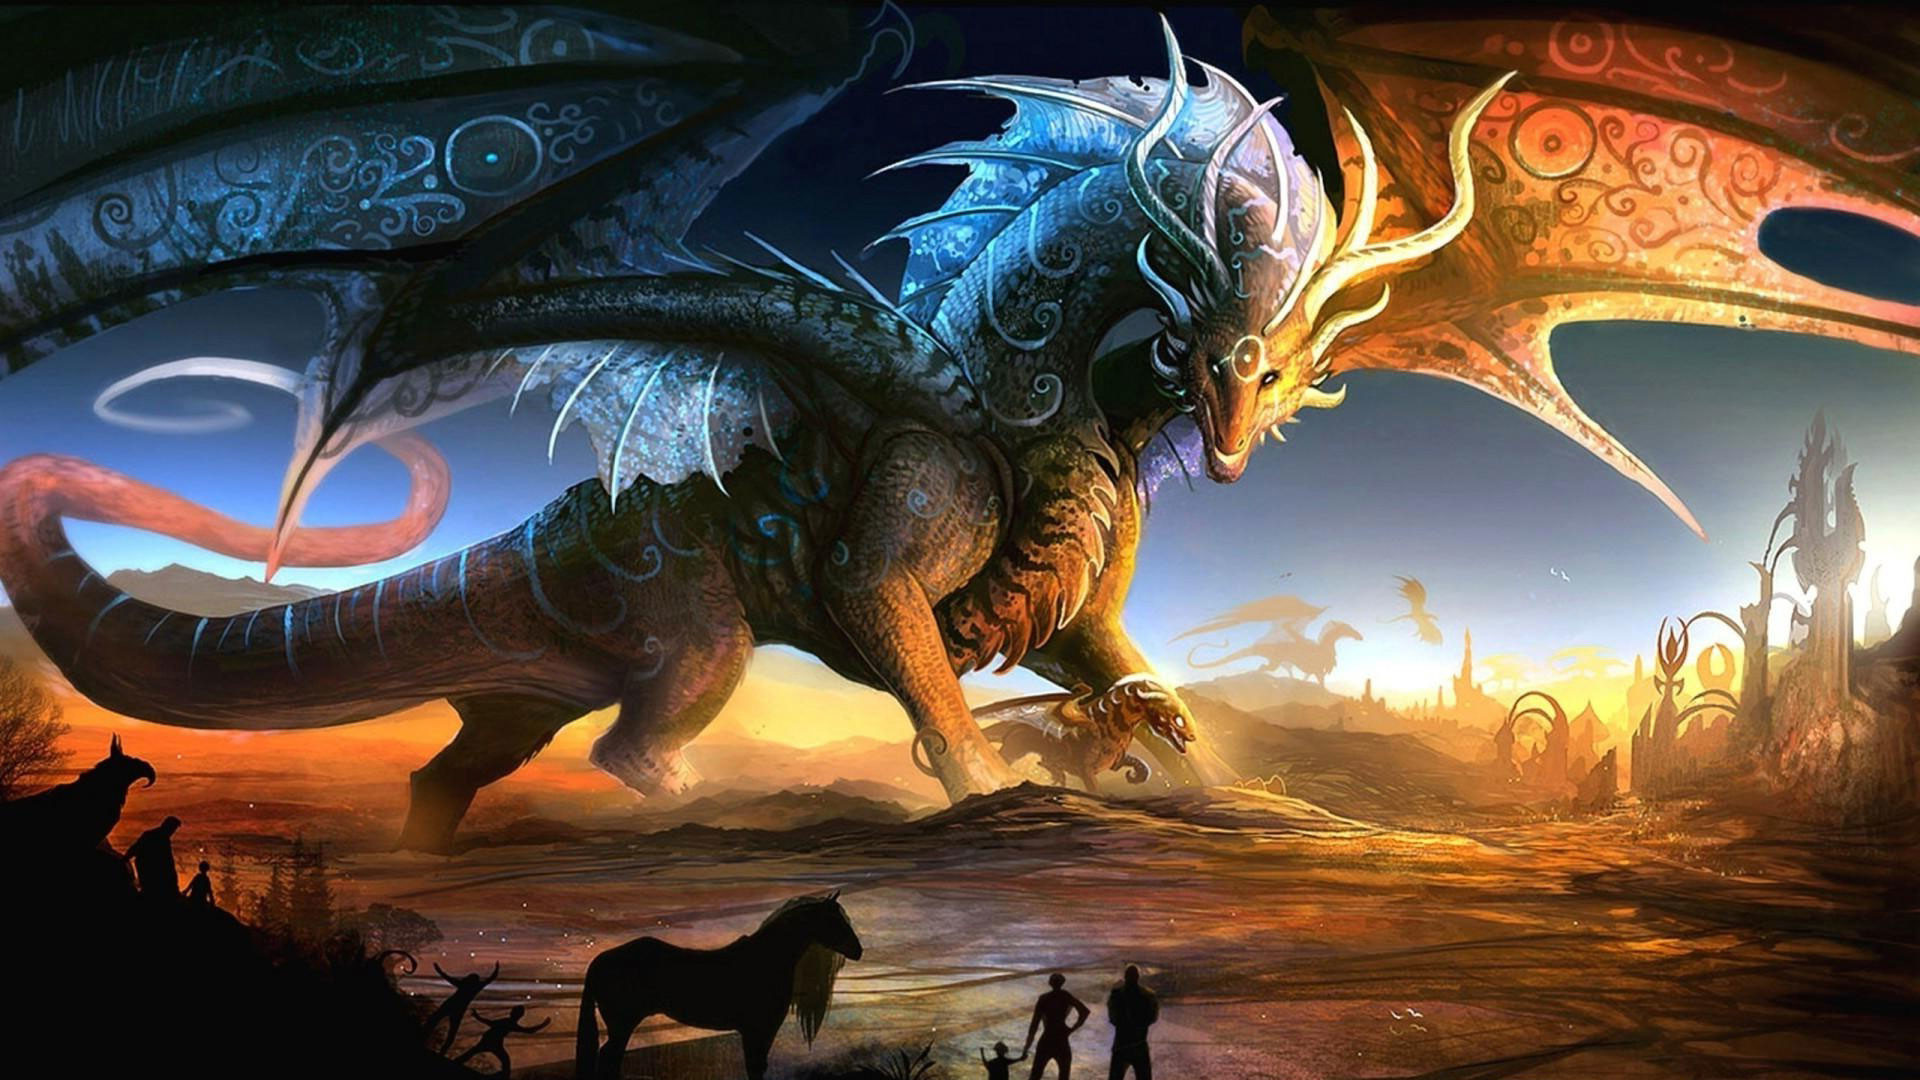 Cool 3d dragon wallpapers 55 images - Dragon wallpaper 3d ...